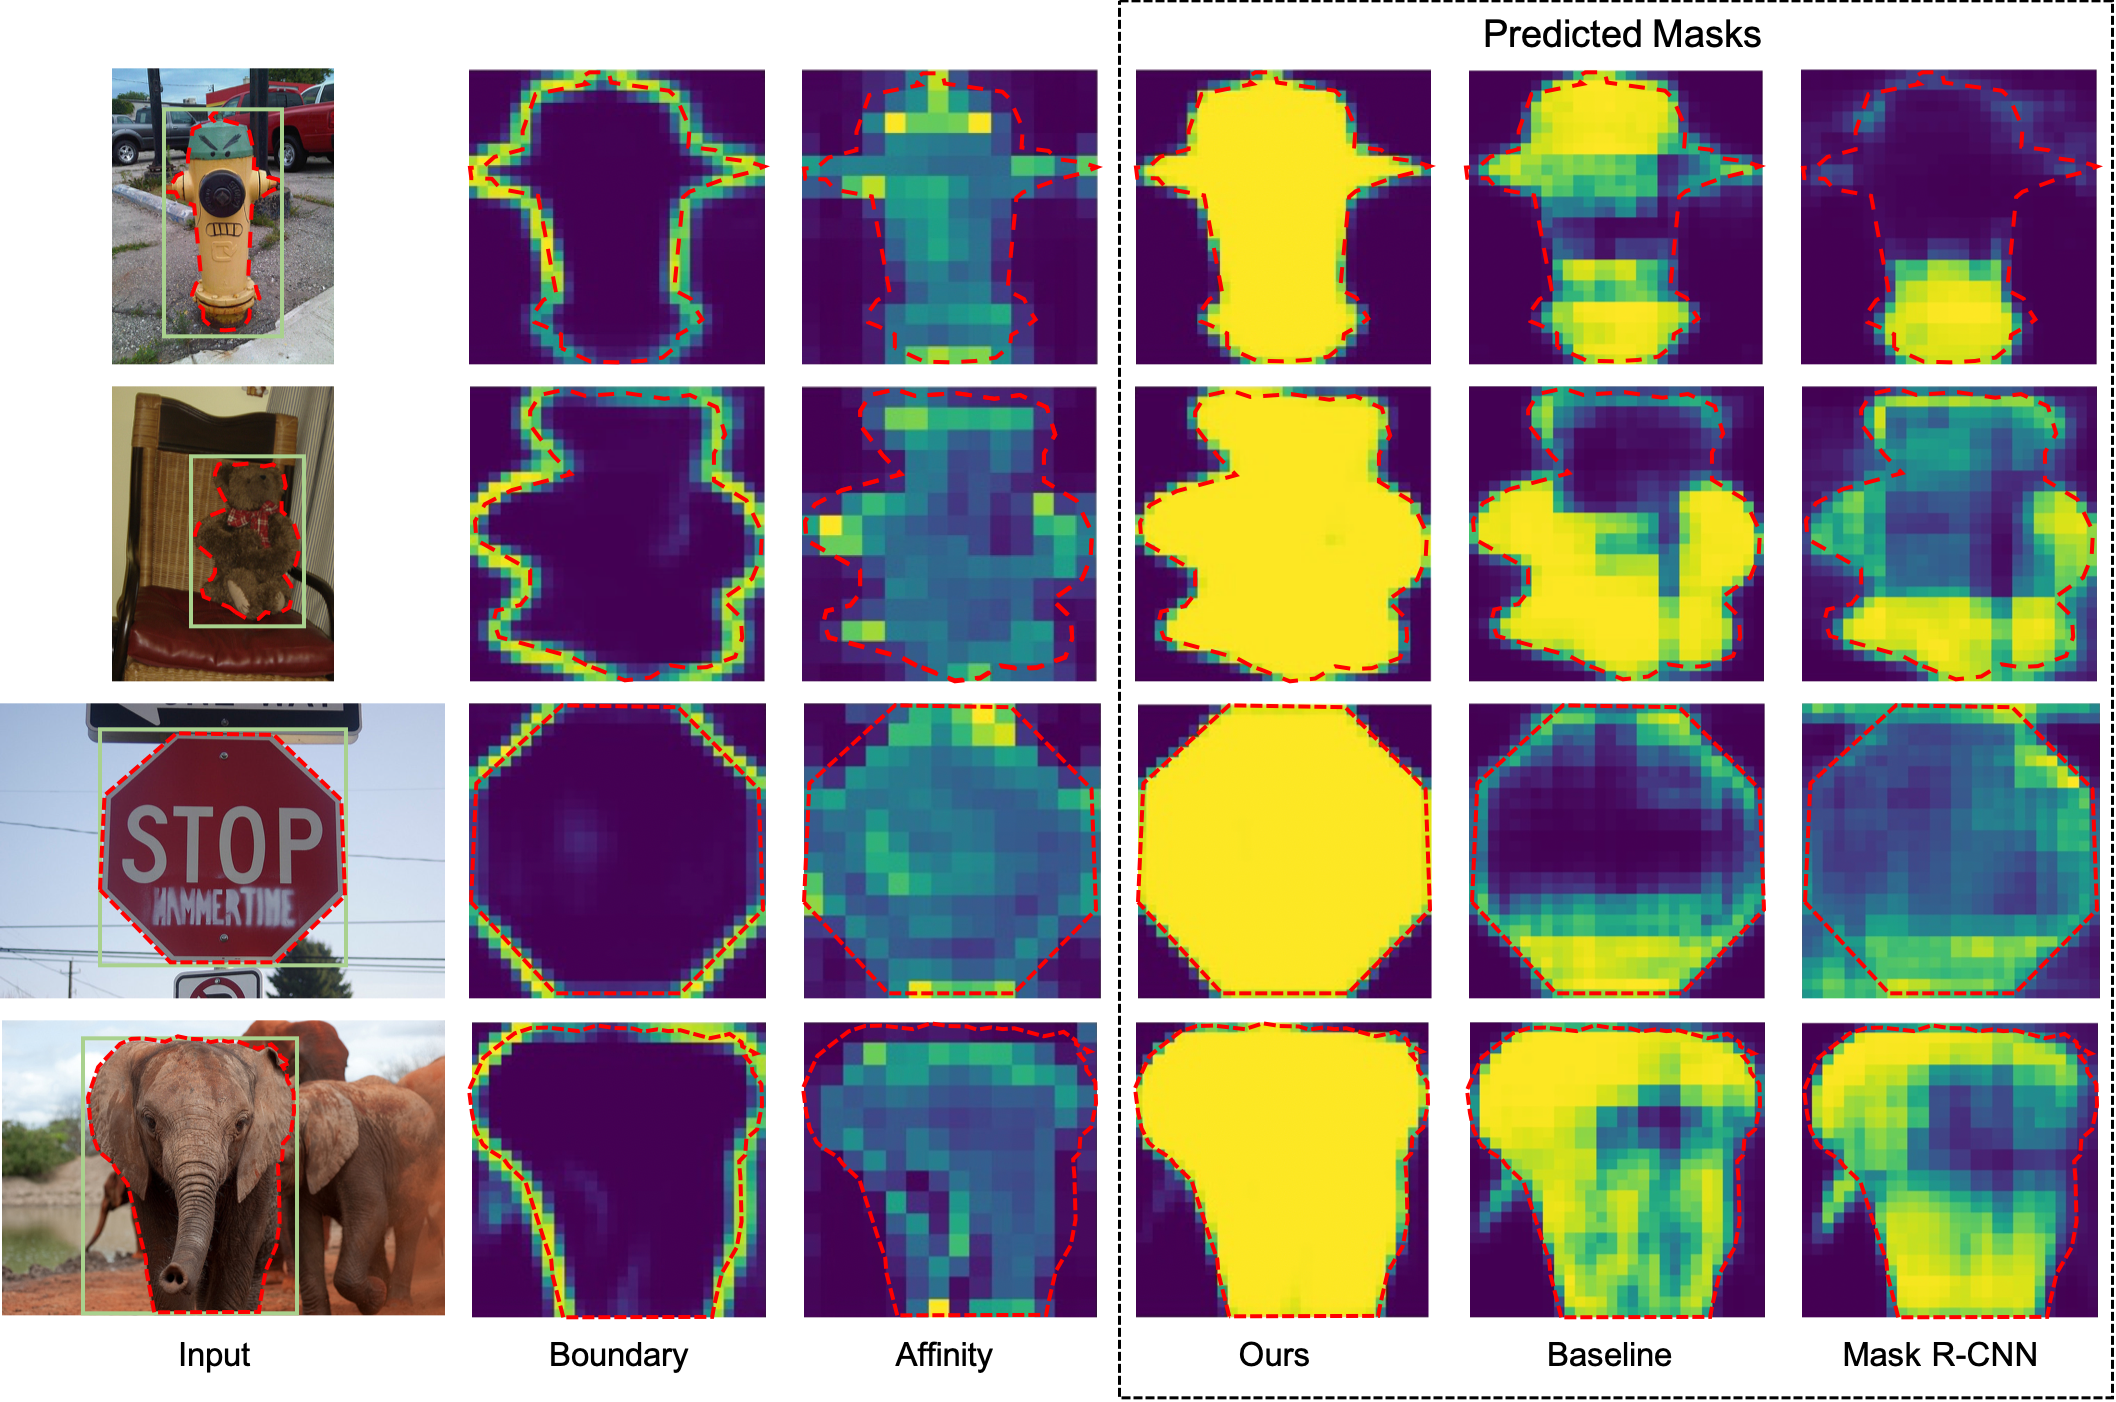 Visualization of boundary heatmaps and affinity heatmaps learned by our model for four novel categories of cases. The red dash lines indicate the ground-truth mask. The affinity heatmap is obtained by calculating the mean of the affinity maps for each instance pixel. The